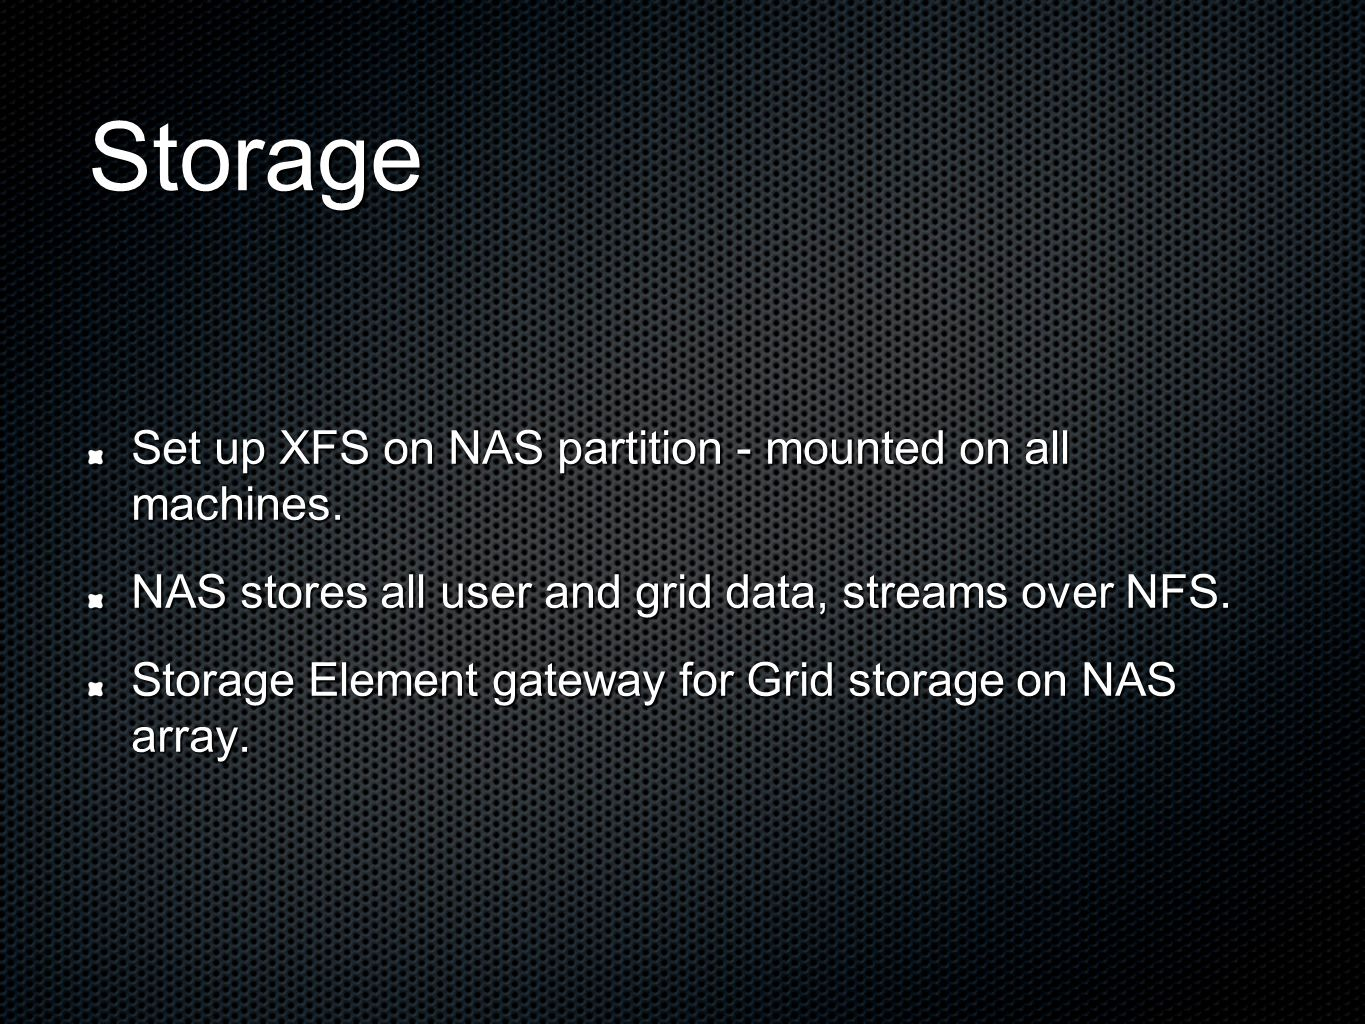 Storage Set up XFS on NAS partition - mounted on all machines.